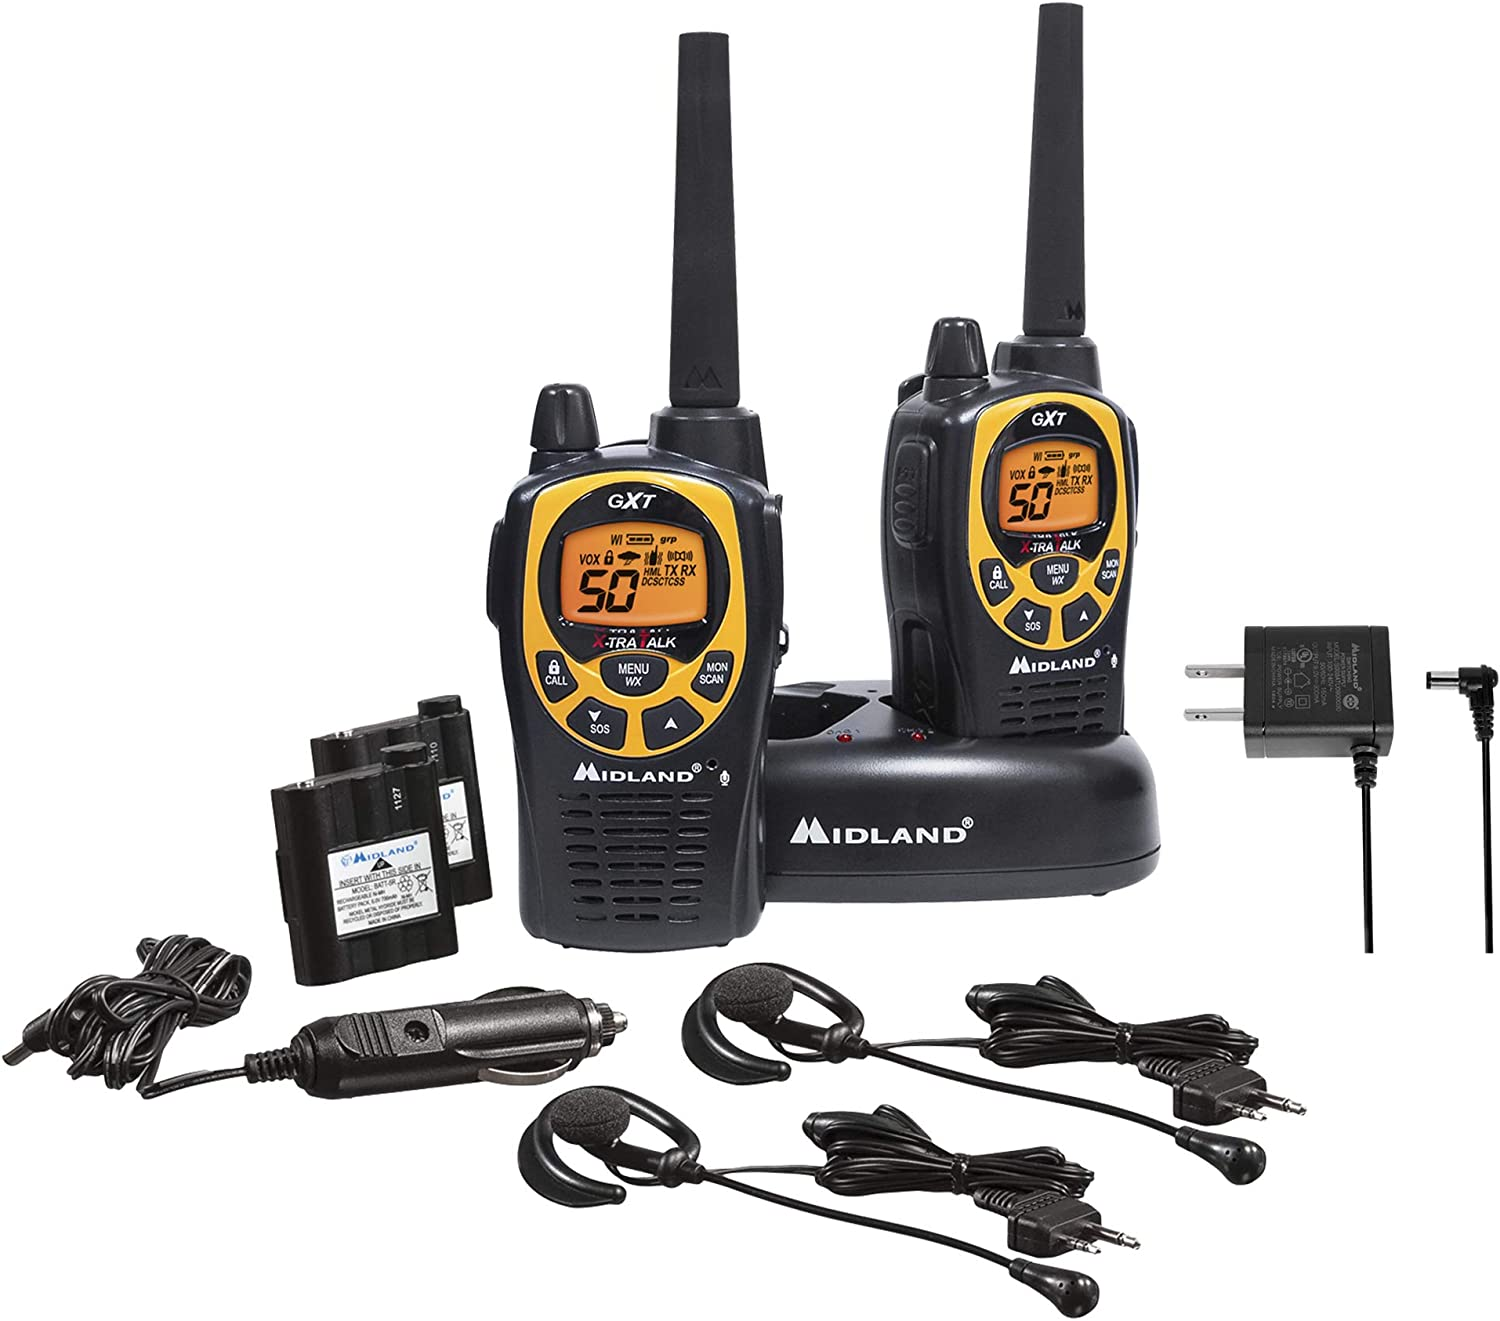 Midland GXT1030VP4 50-Channel GMRS Two-Way Radio